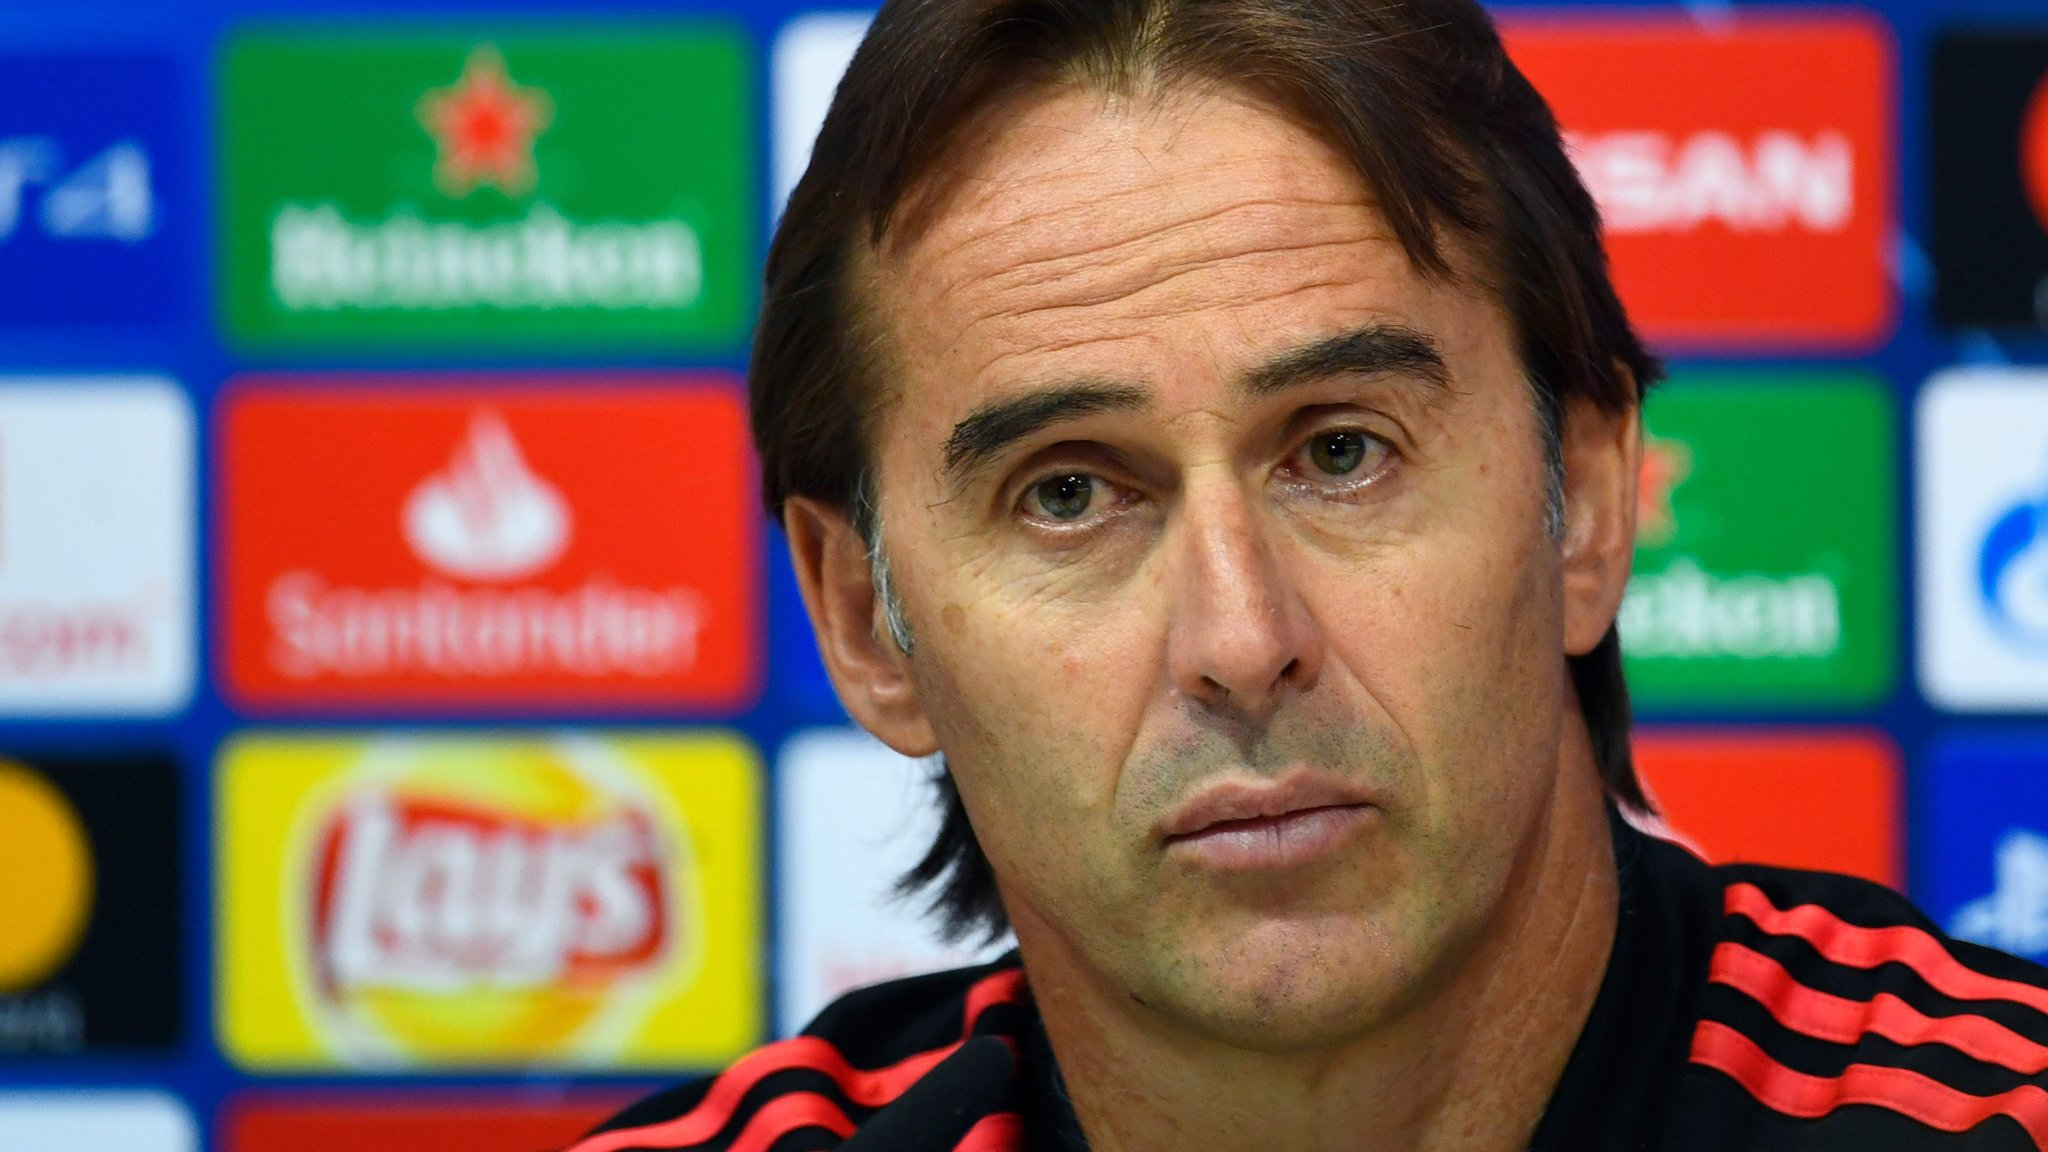 Real Madrid boss Lopetegui vows to 'fight' on